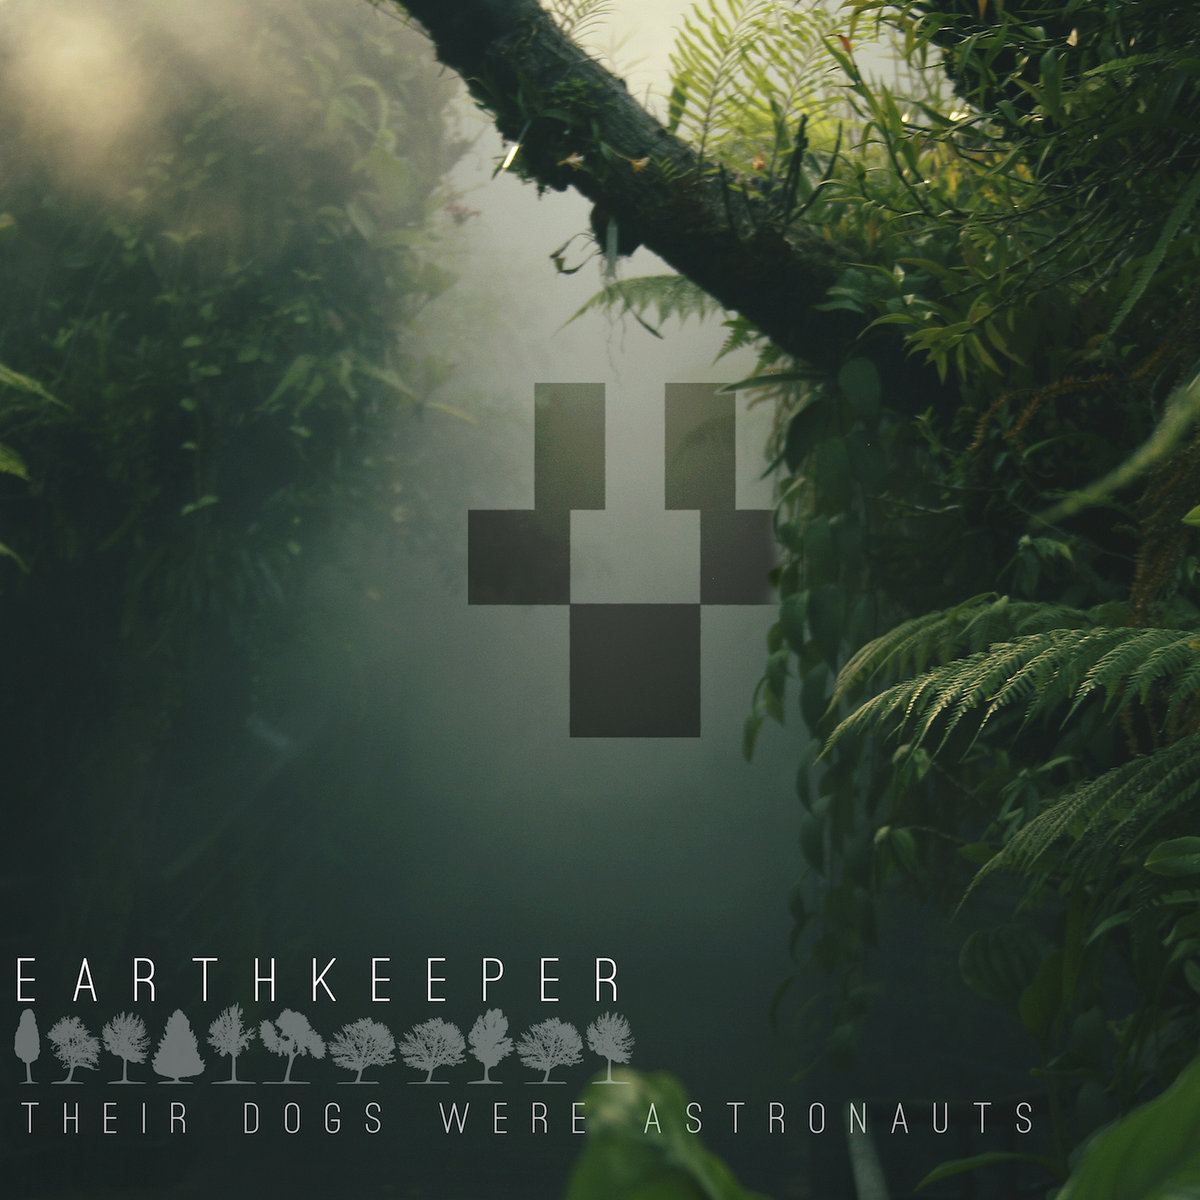 Their Dogs Were Astronauts - He Who Saw The Darkness @ 'Earthkeeper' album (instrumental metal, metal)